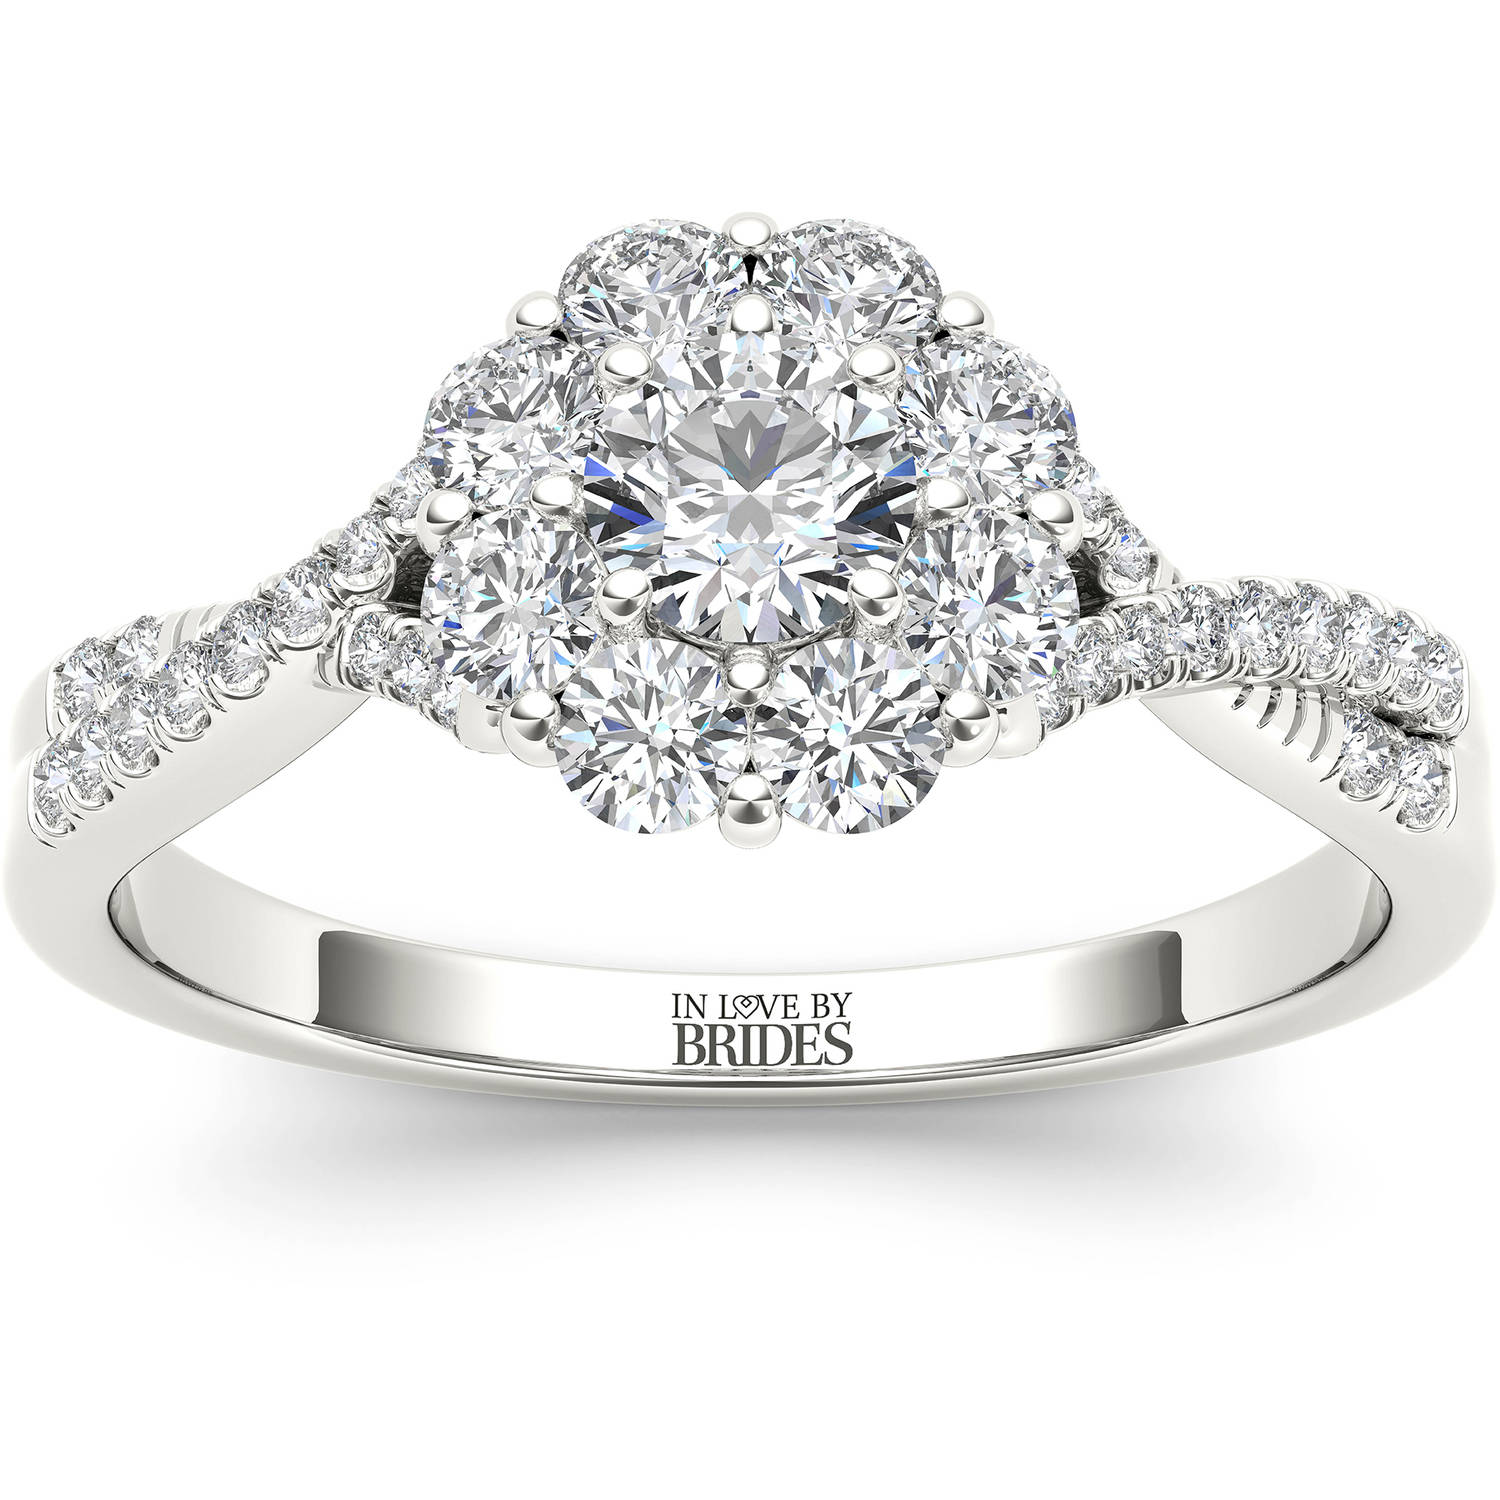 IN LOVE BY BRIDES 2 Carat T.W. Certified Flower Burst Diamond 14kt White Gold Engagement Ring